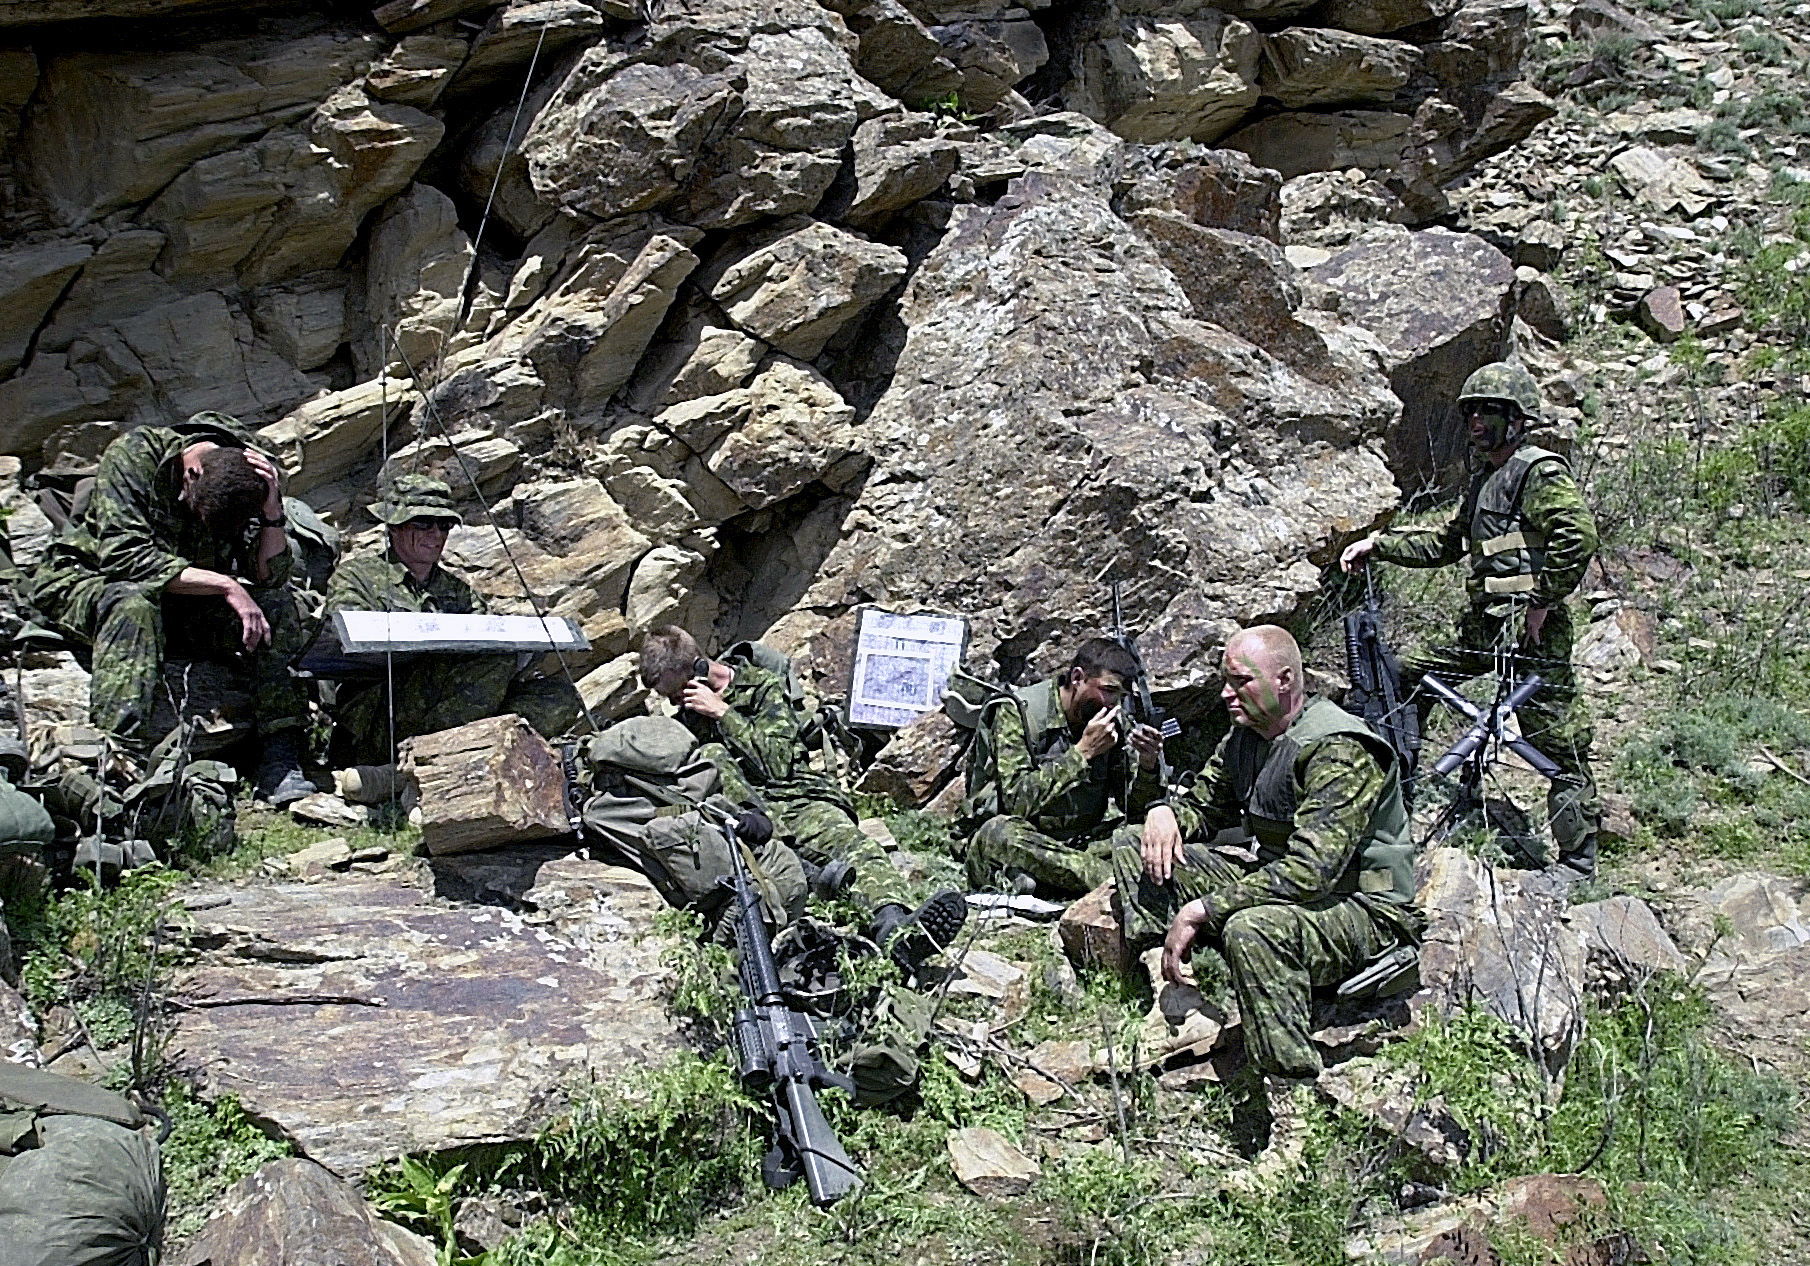 Camouflaged soldiers sit outside a cave. They hold guns and wait for something.